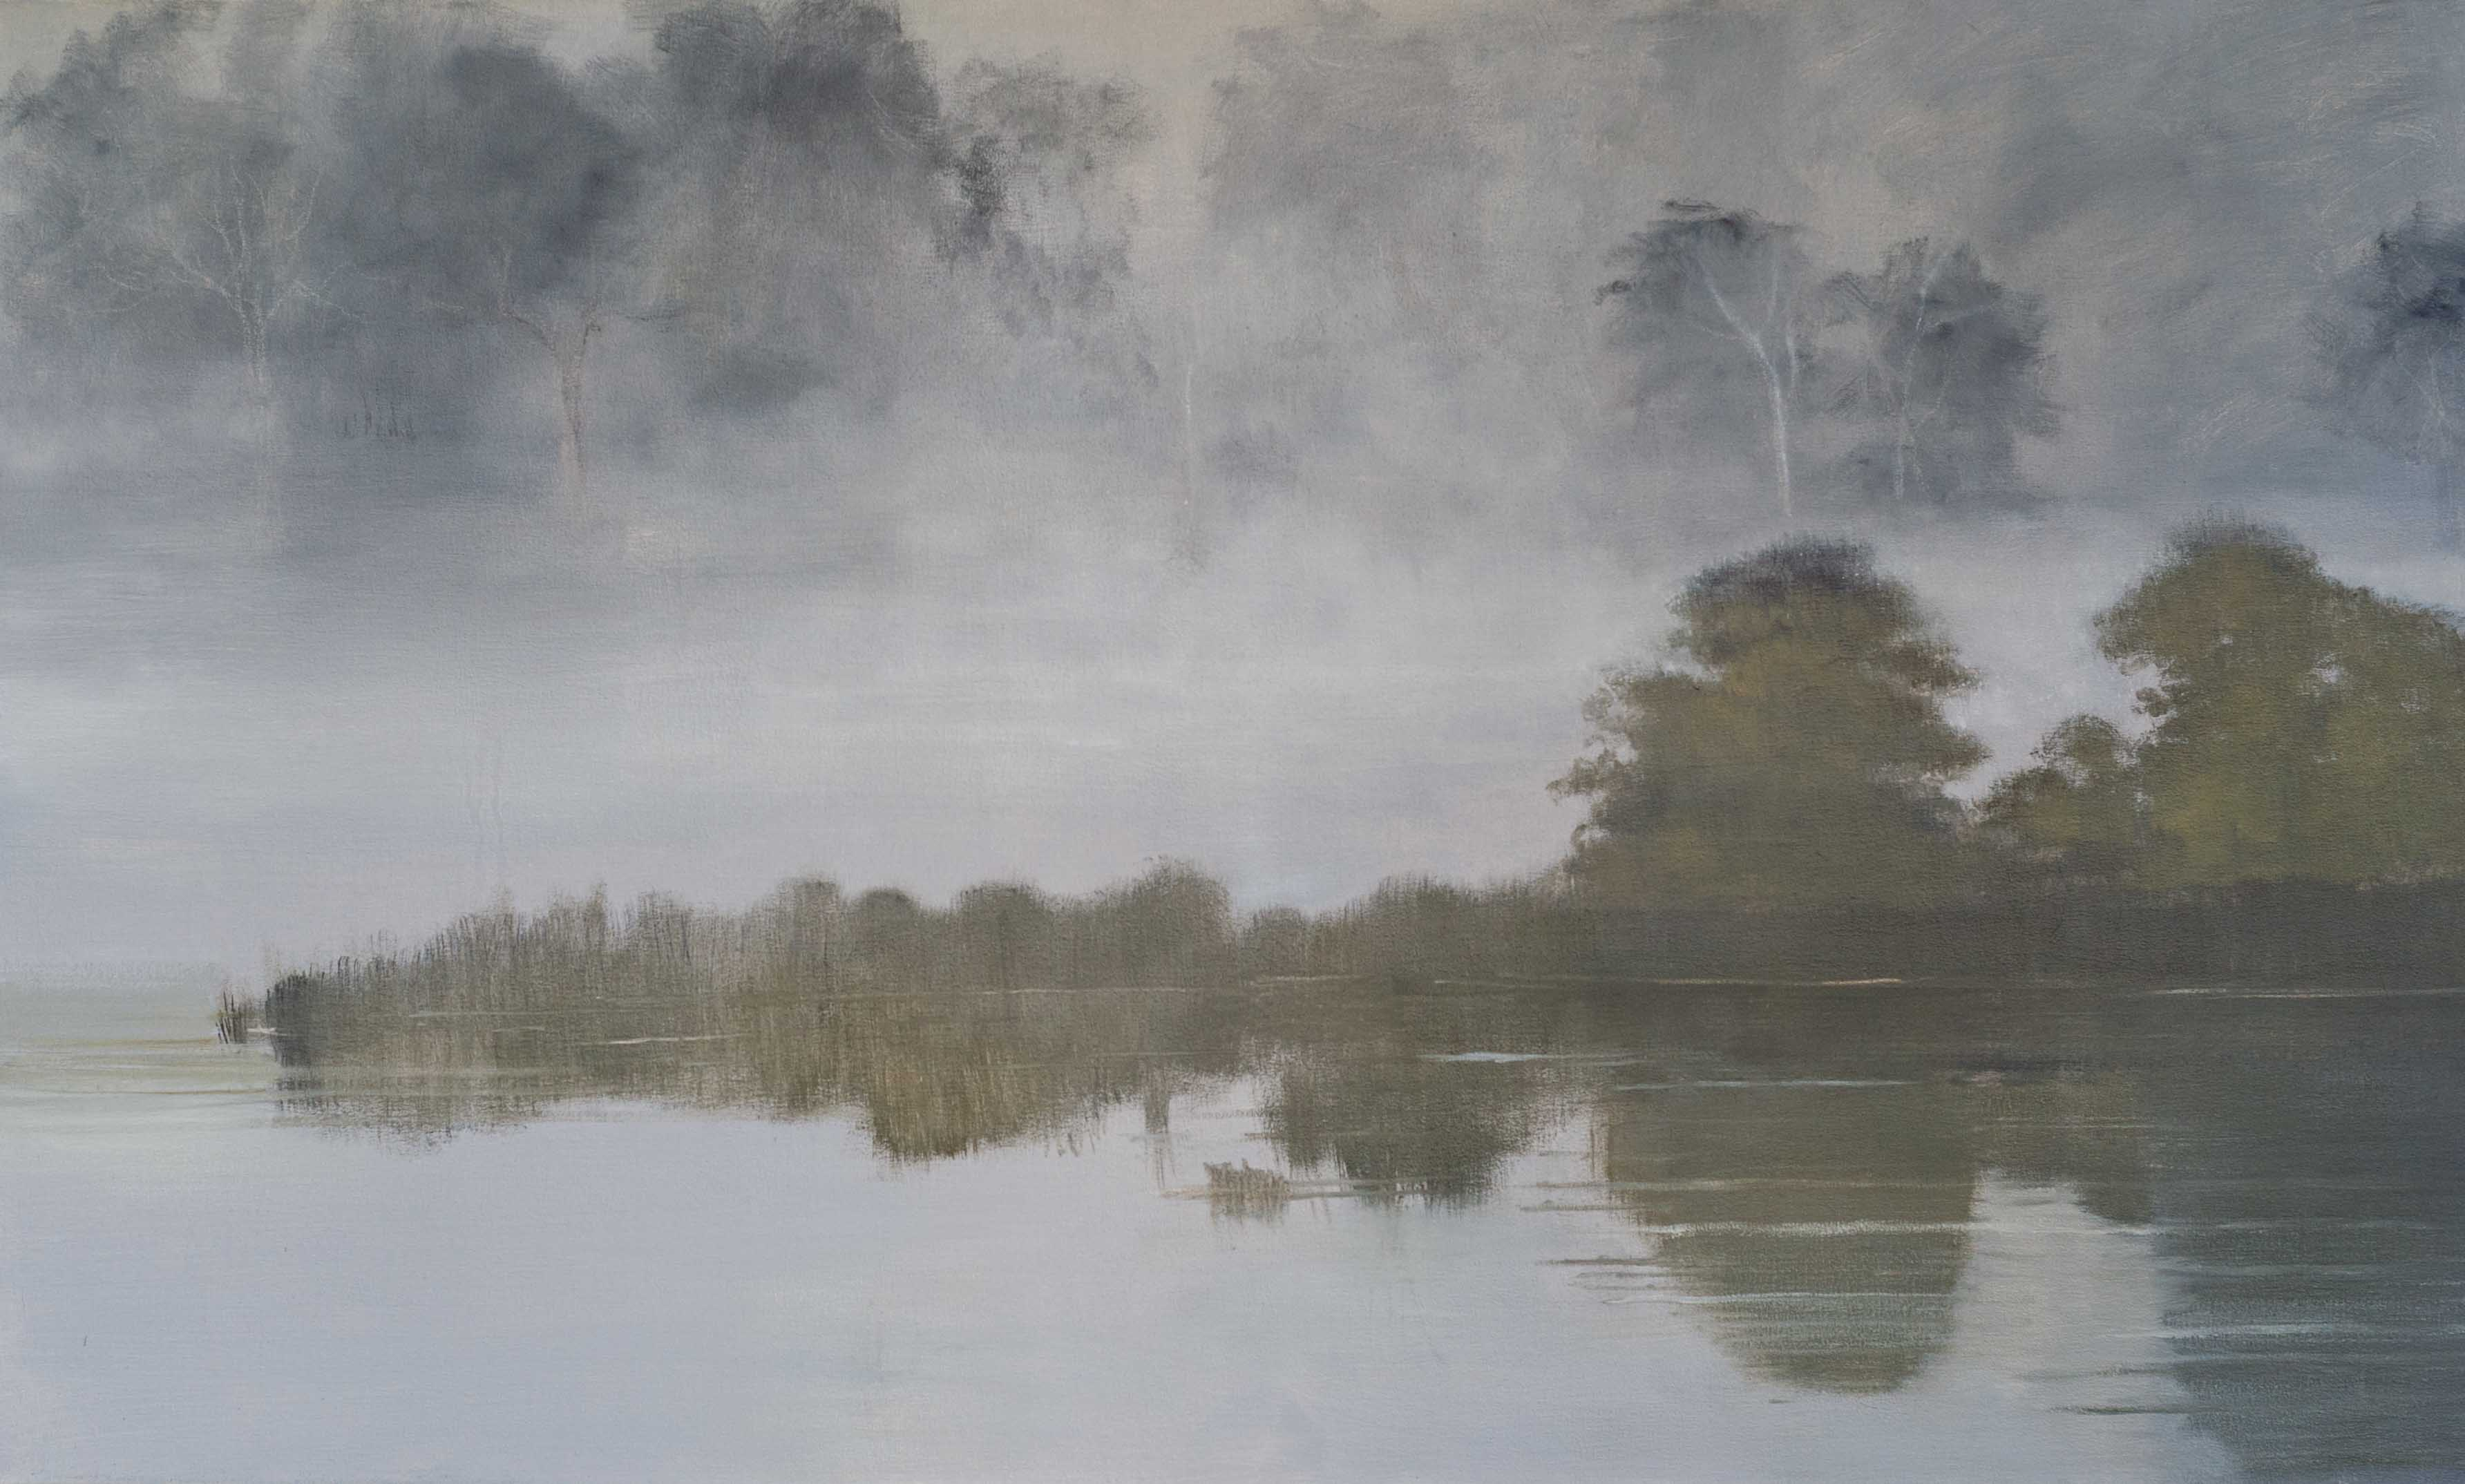 Foggy Morning on the River - 40x60 - 2016